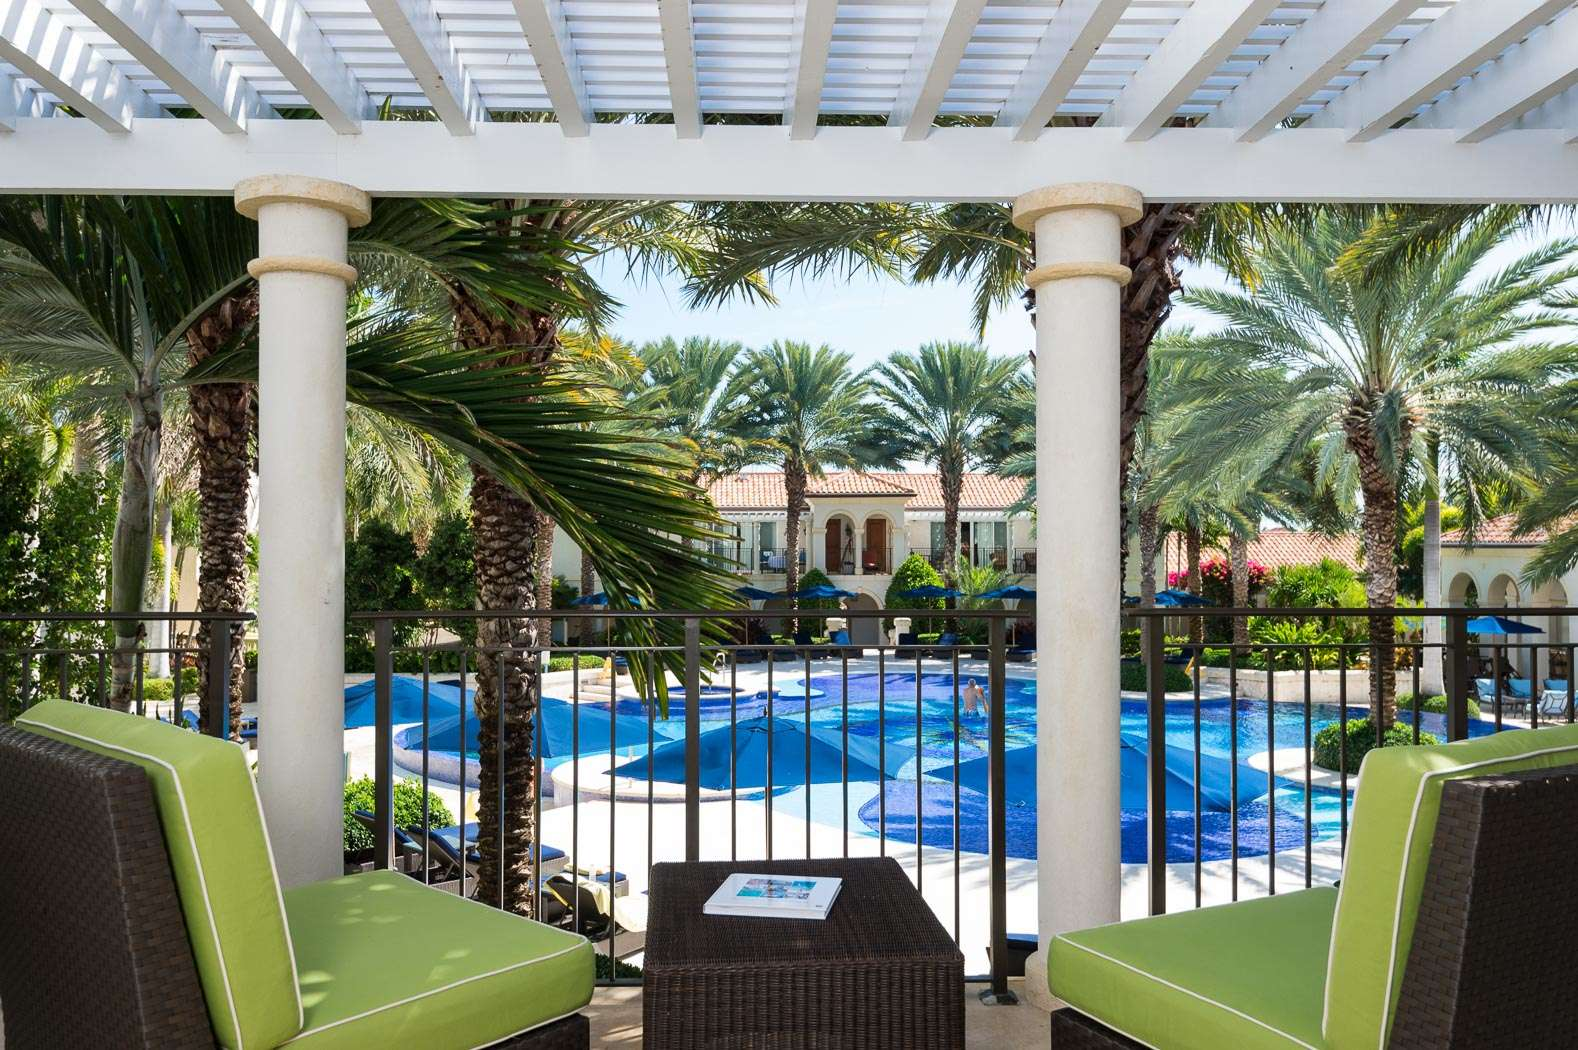 Luxury villa rentals caribbean - Turks and caicos - Providenciales - Grace bay - One Bedroom Pool View Suite | Bianca Sands - Image 1/5